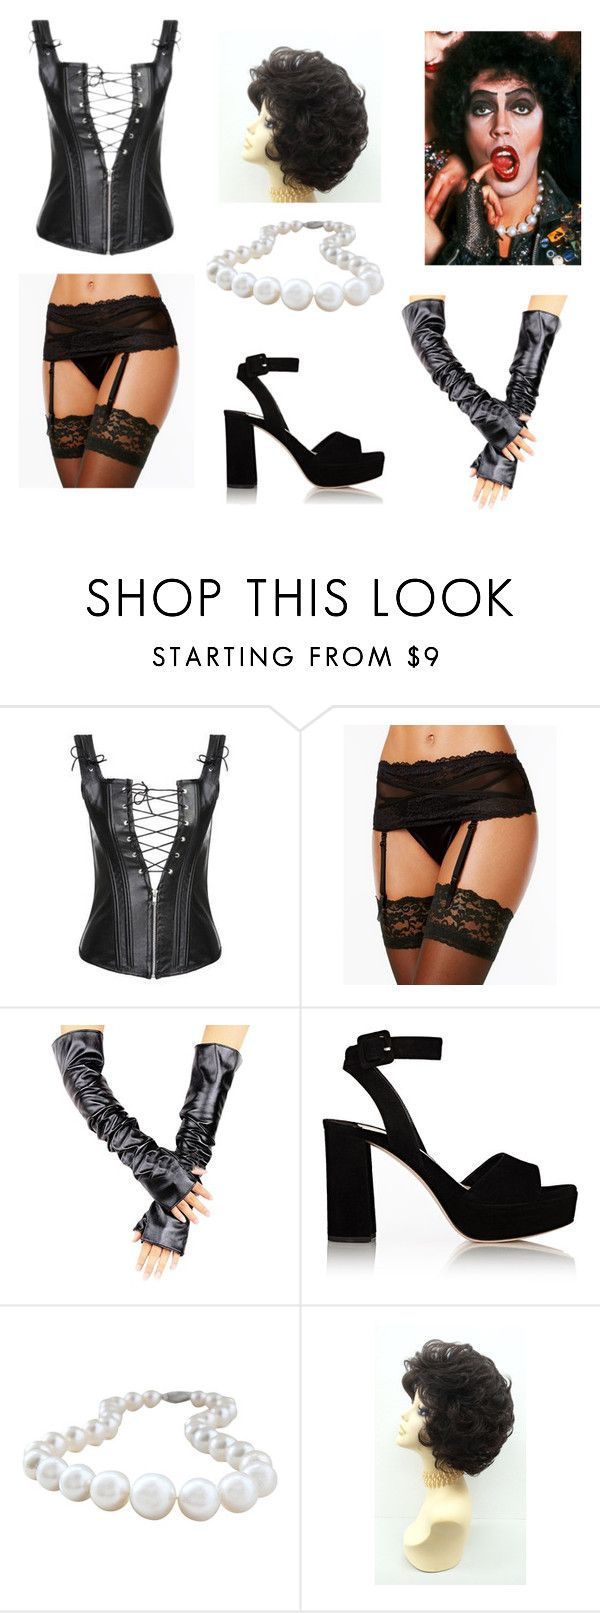 """""The Rocky Horror Picture Show"" Dr. Frank N Furter Costume"" by oliviaf14 on Polyvore featuring Maidenform and Miu Miu"